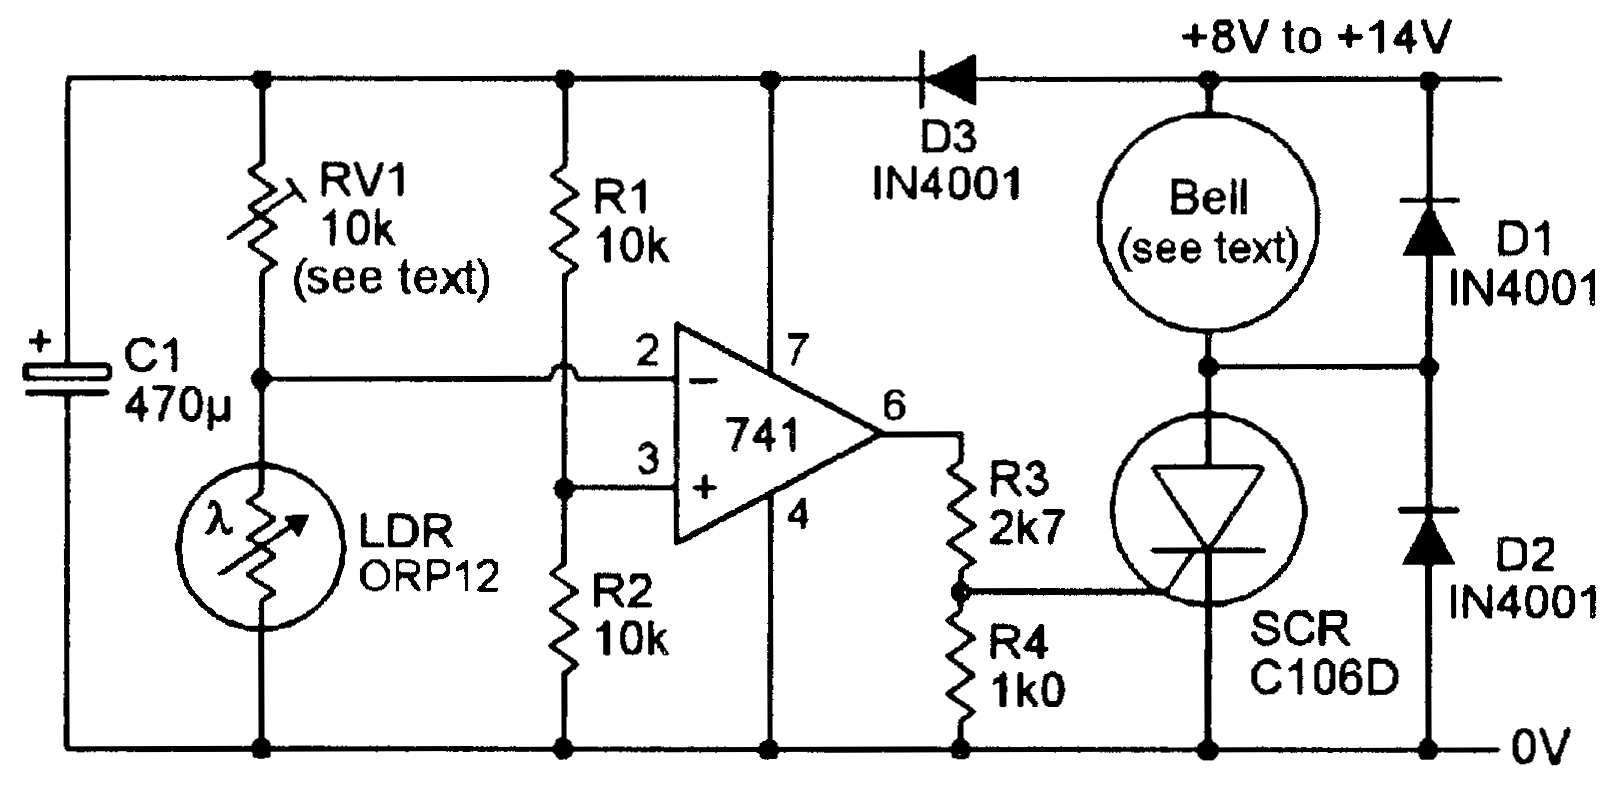 Light Sensitive Circuits Nuts Volts Magazine Gain Control Preamplifier Circuit Diagram Electronic A Bell Output Ldr Alarm